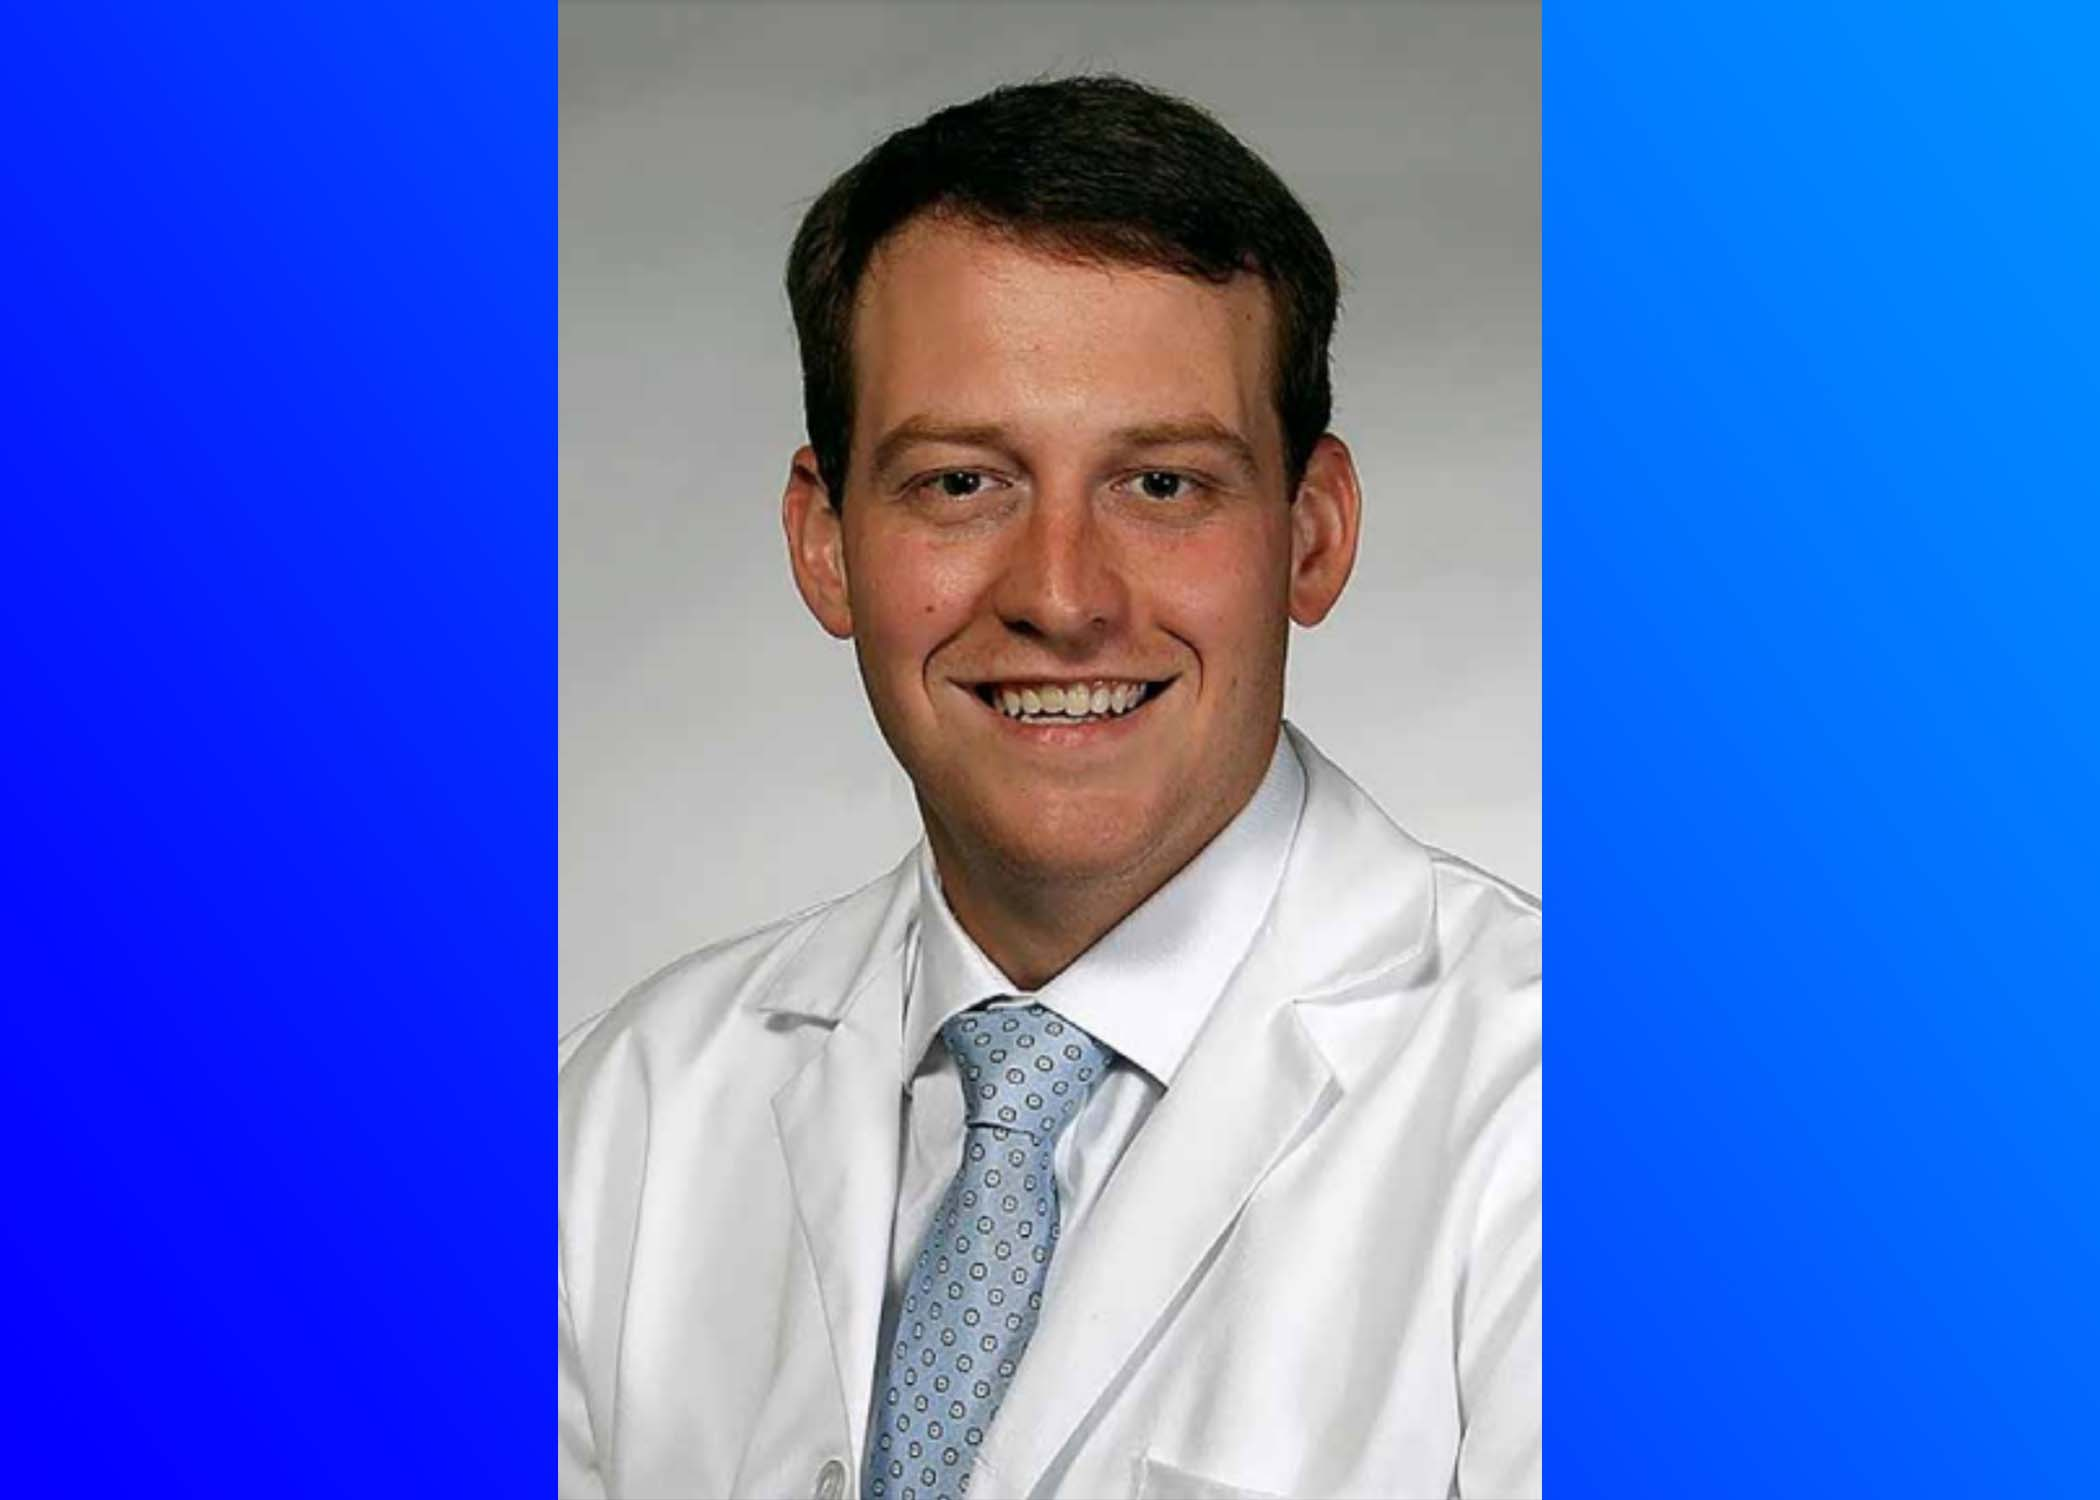 Trussville native joins OrthoAlabama Spine and Sports, offering excellence in sports medicine care